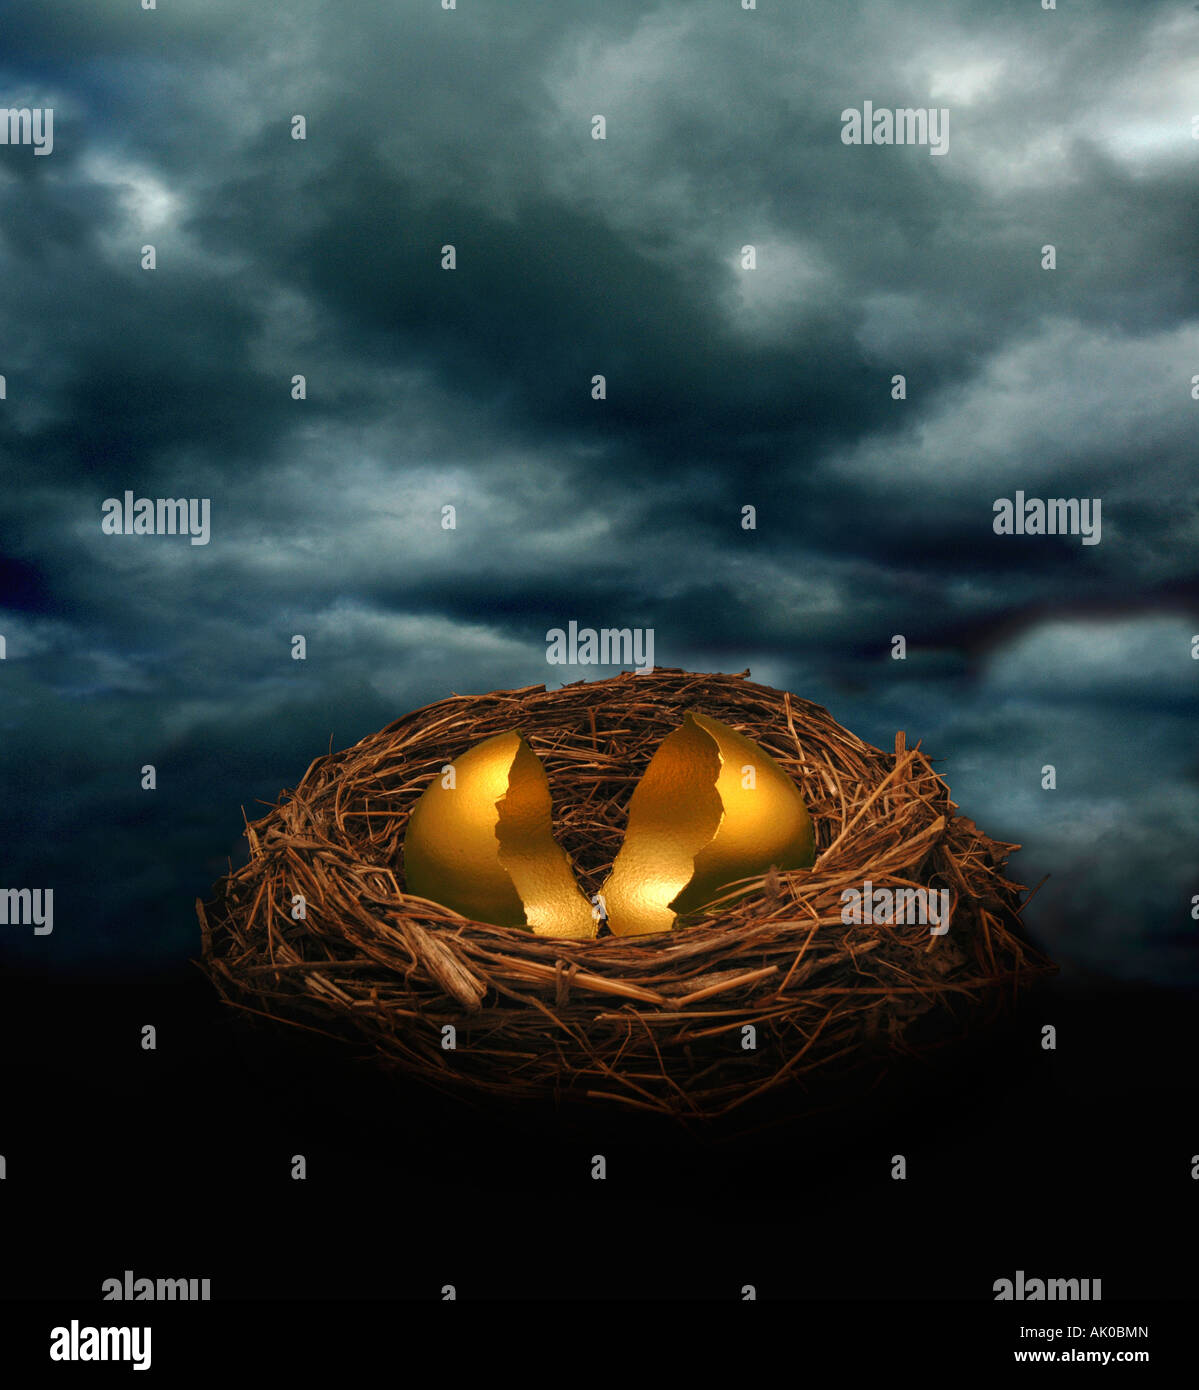 A cracked golden nest egg under a dark cloudy sky Could symbolize financial crash threat or disaster - Stock Image